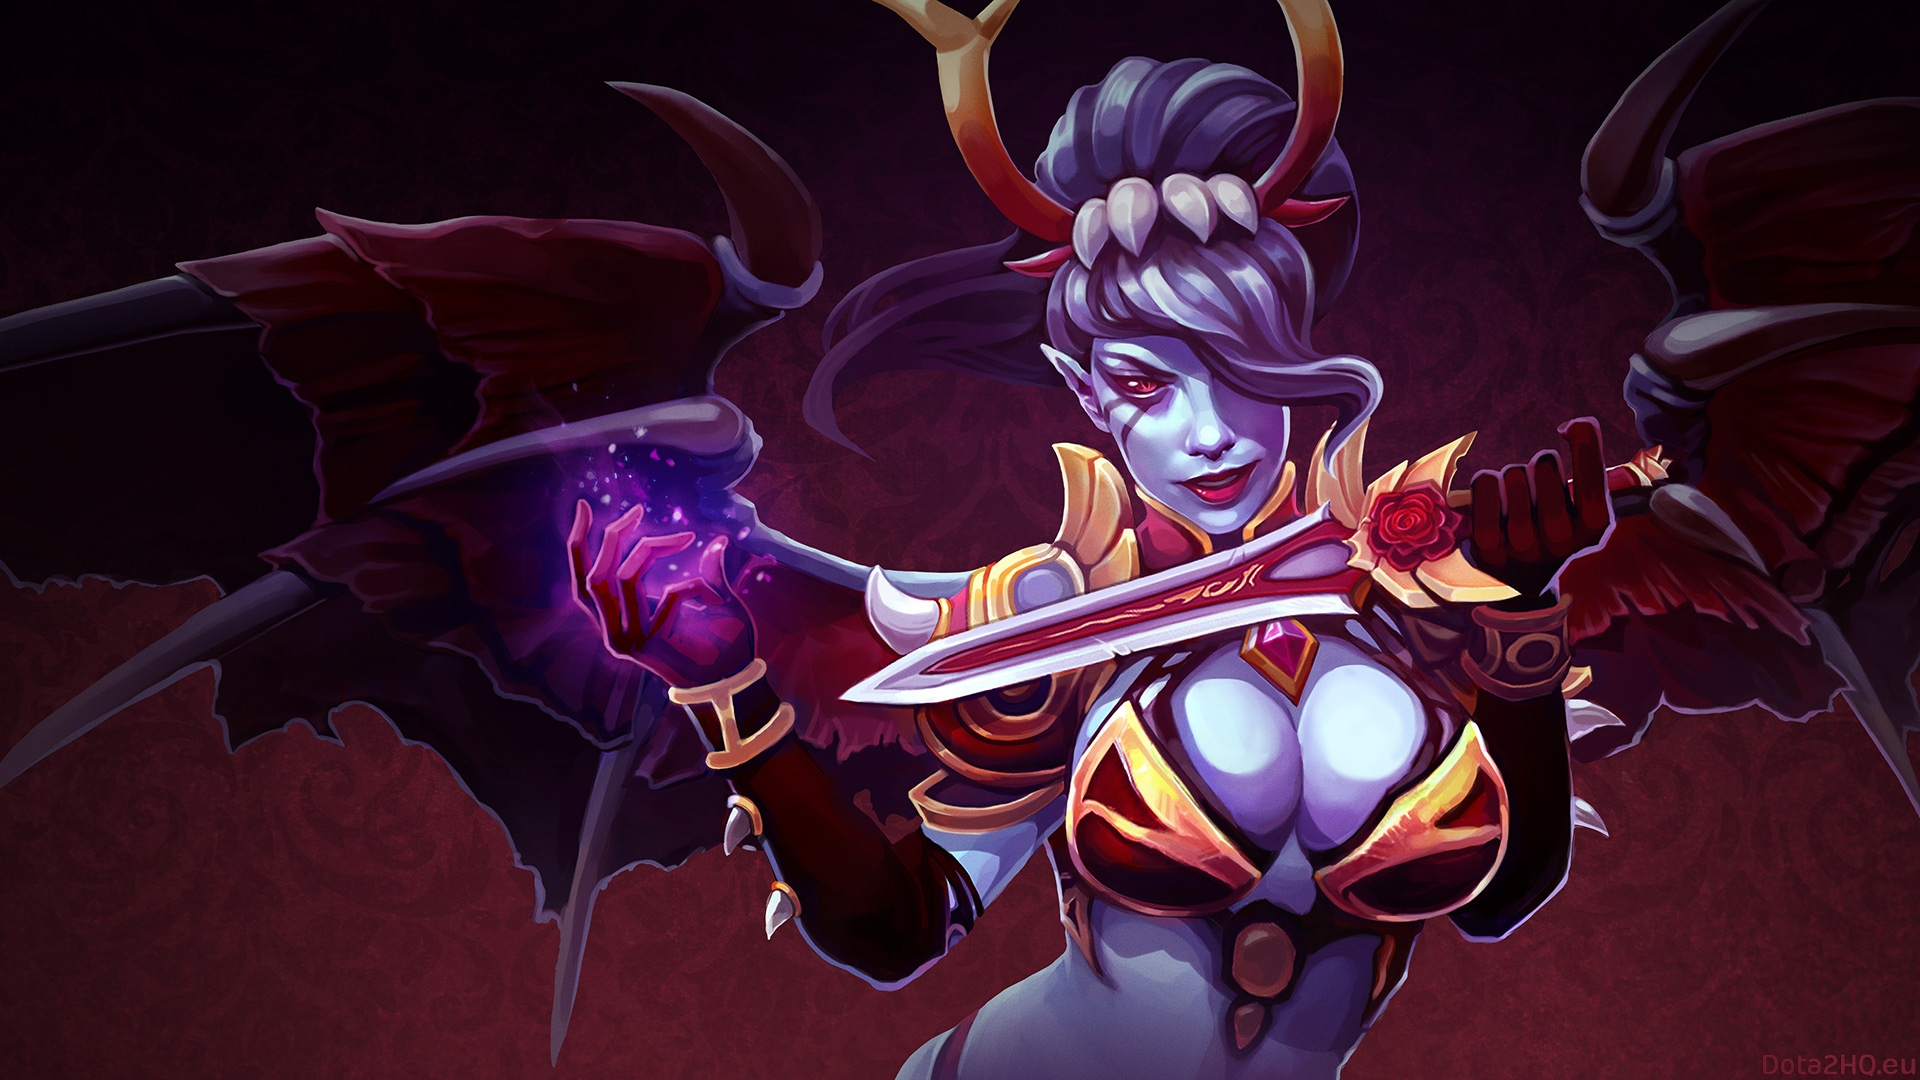 Animated Wallpaper Android Tablet Dota 2 Caracters Queen Of Pain Magic Girl Wings Knife